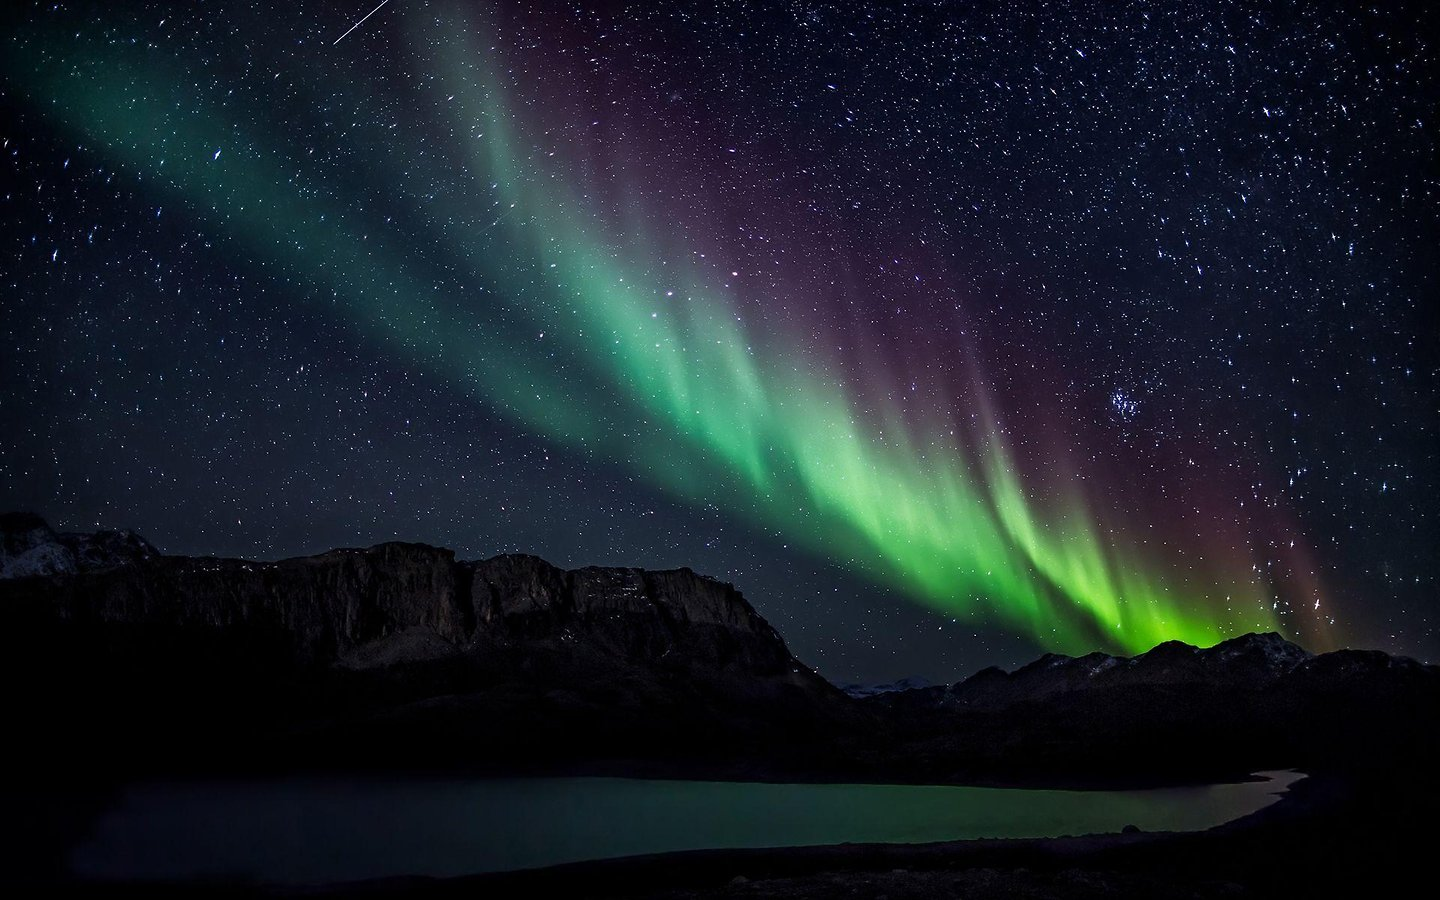 Aurora Borealis Live Wallpaper   Android Apps und Tests   AndroidPIT 1440x900